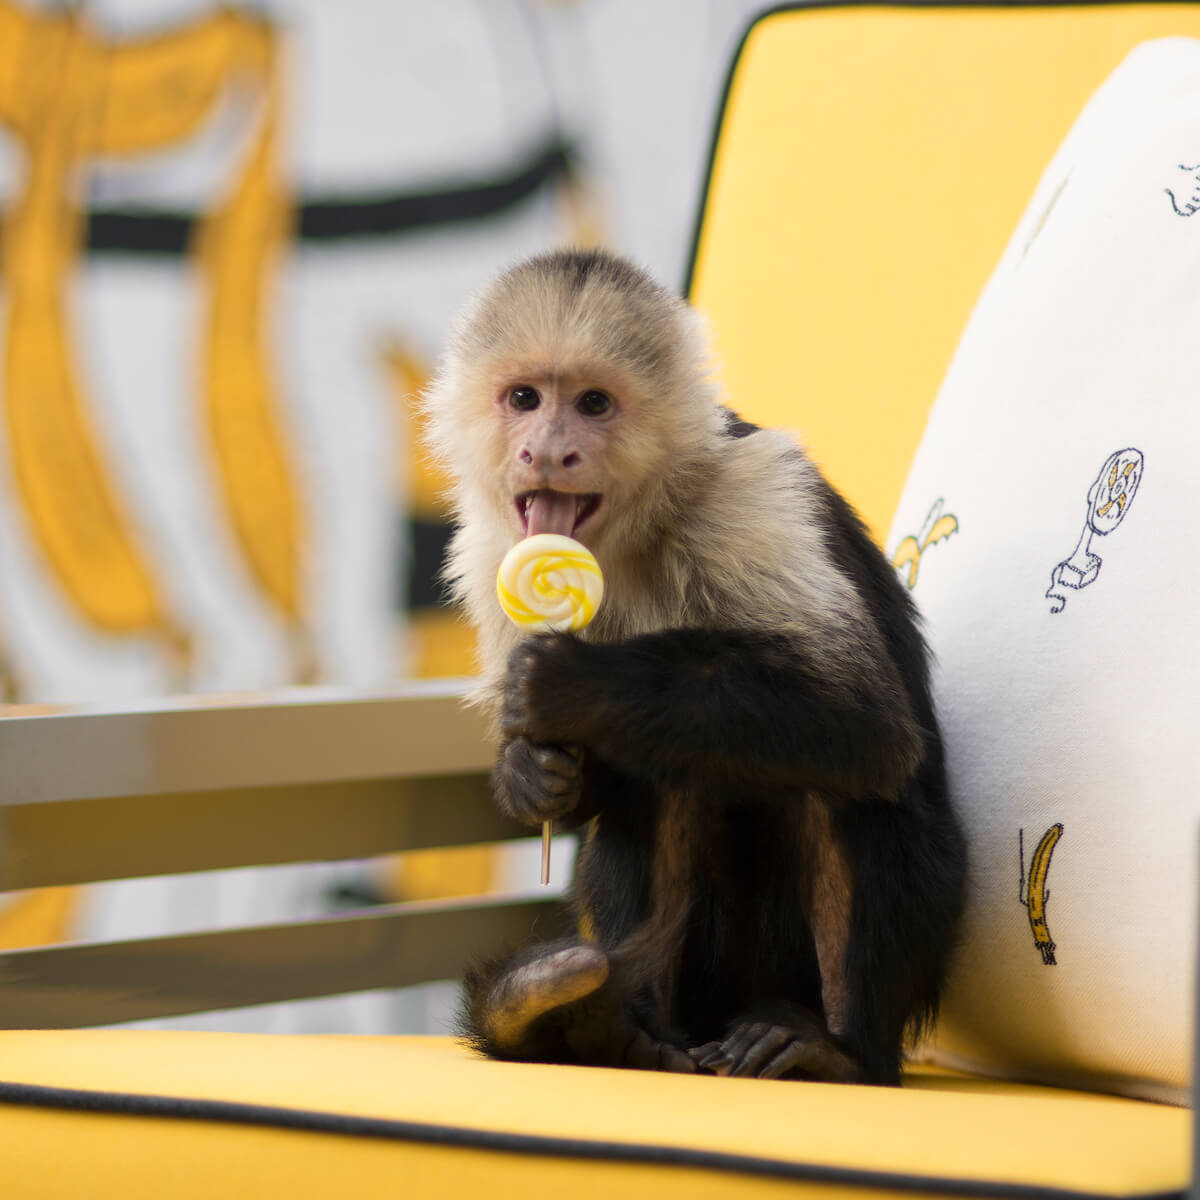 Graphic outdoor lounge chair with monkey.